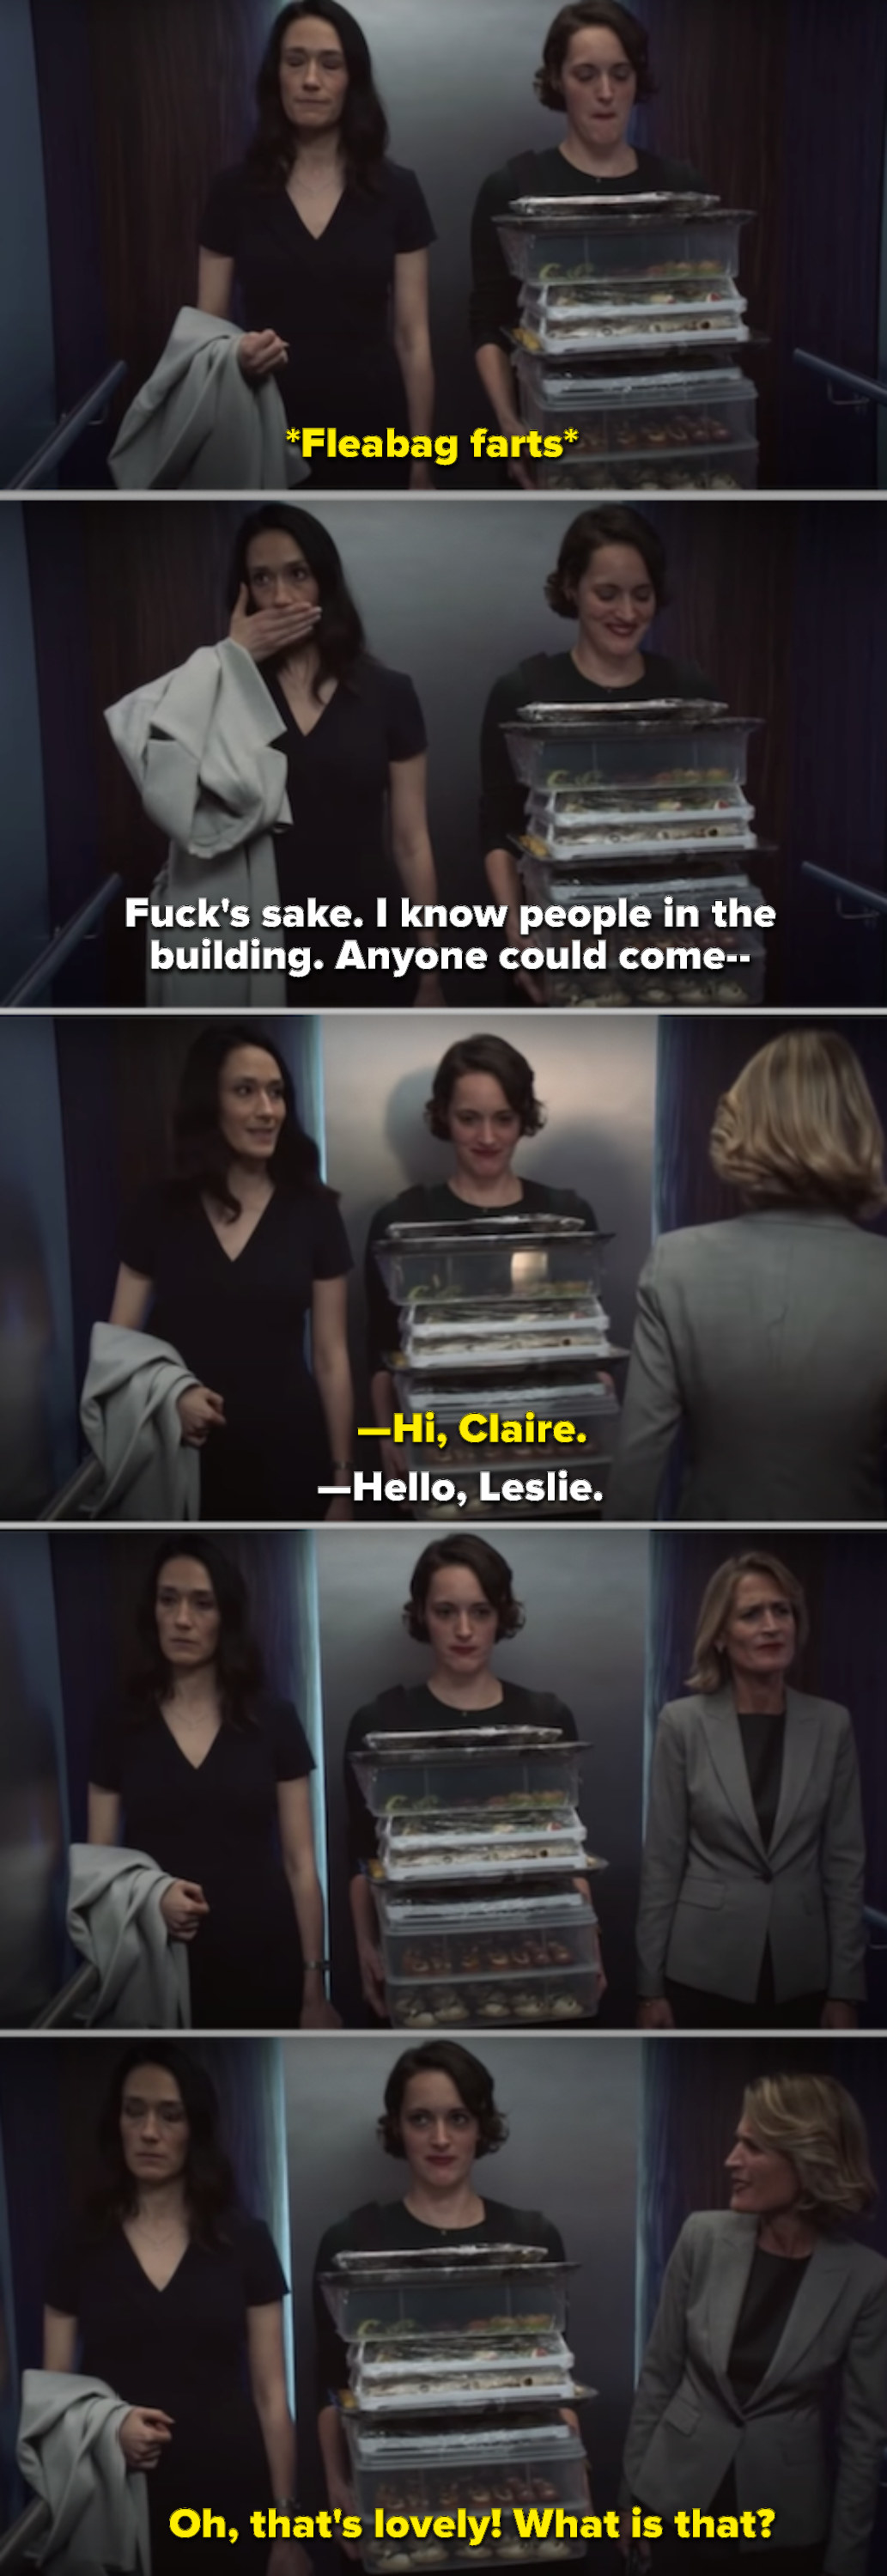 Fleabag farting in the elevator while carrying a tray of food, and one of Claire's coworkers walks in